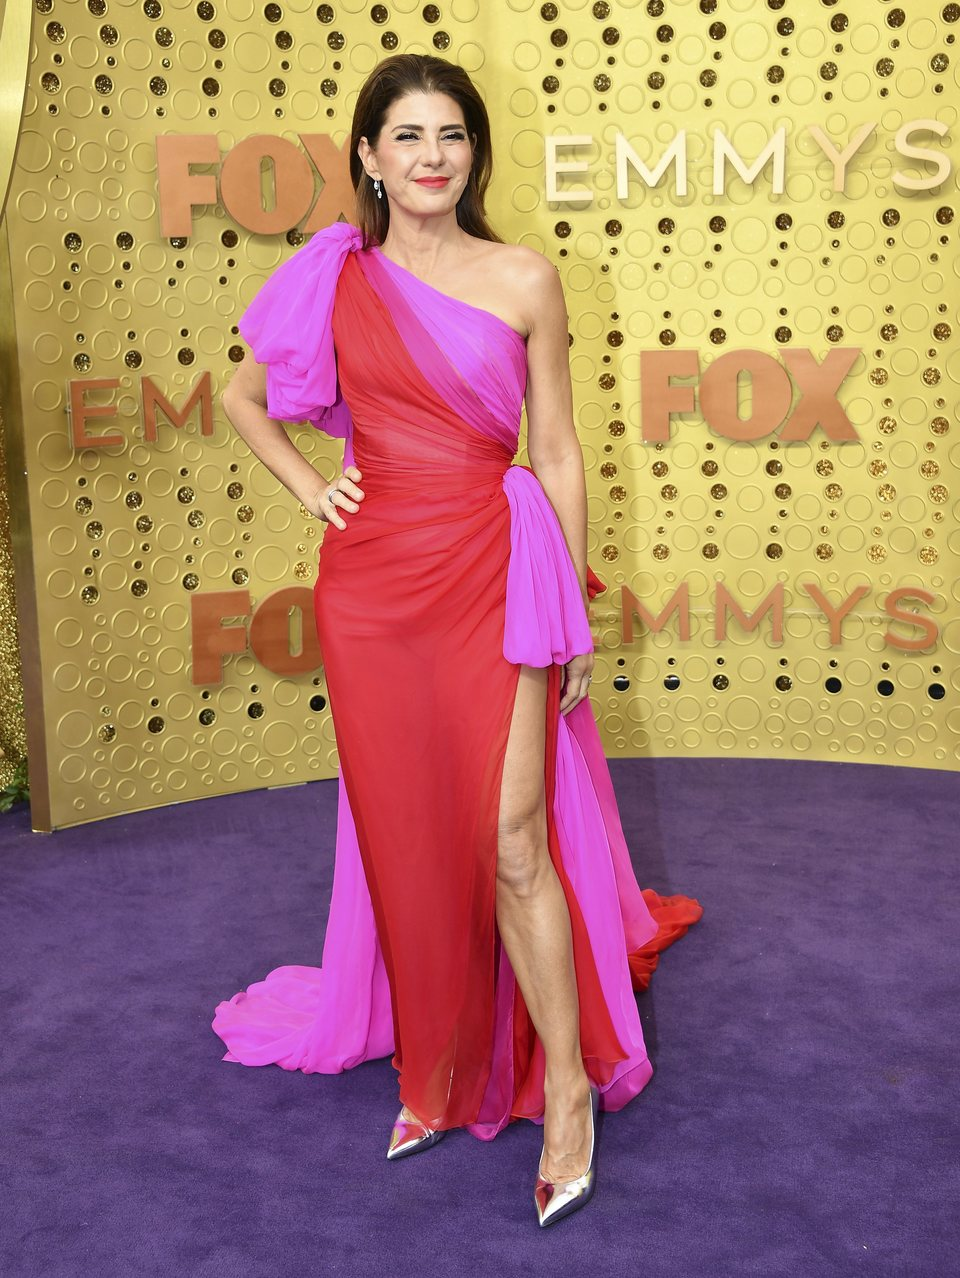 Marisa Tomei at the Emmy 2019 red carpet